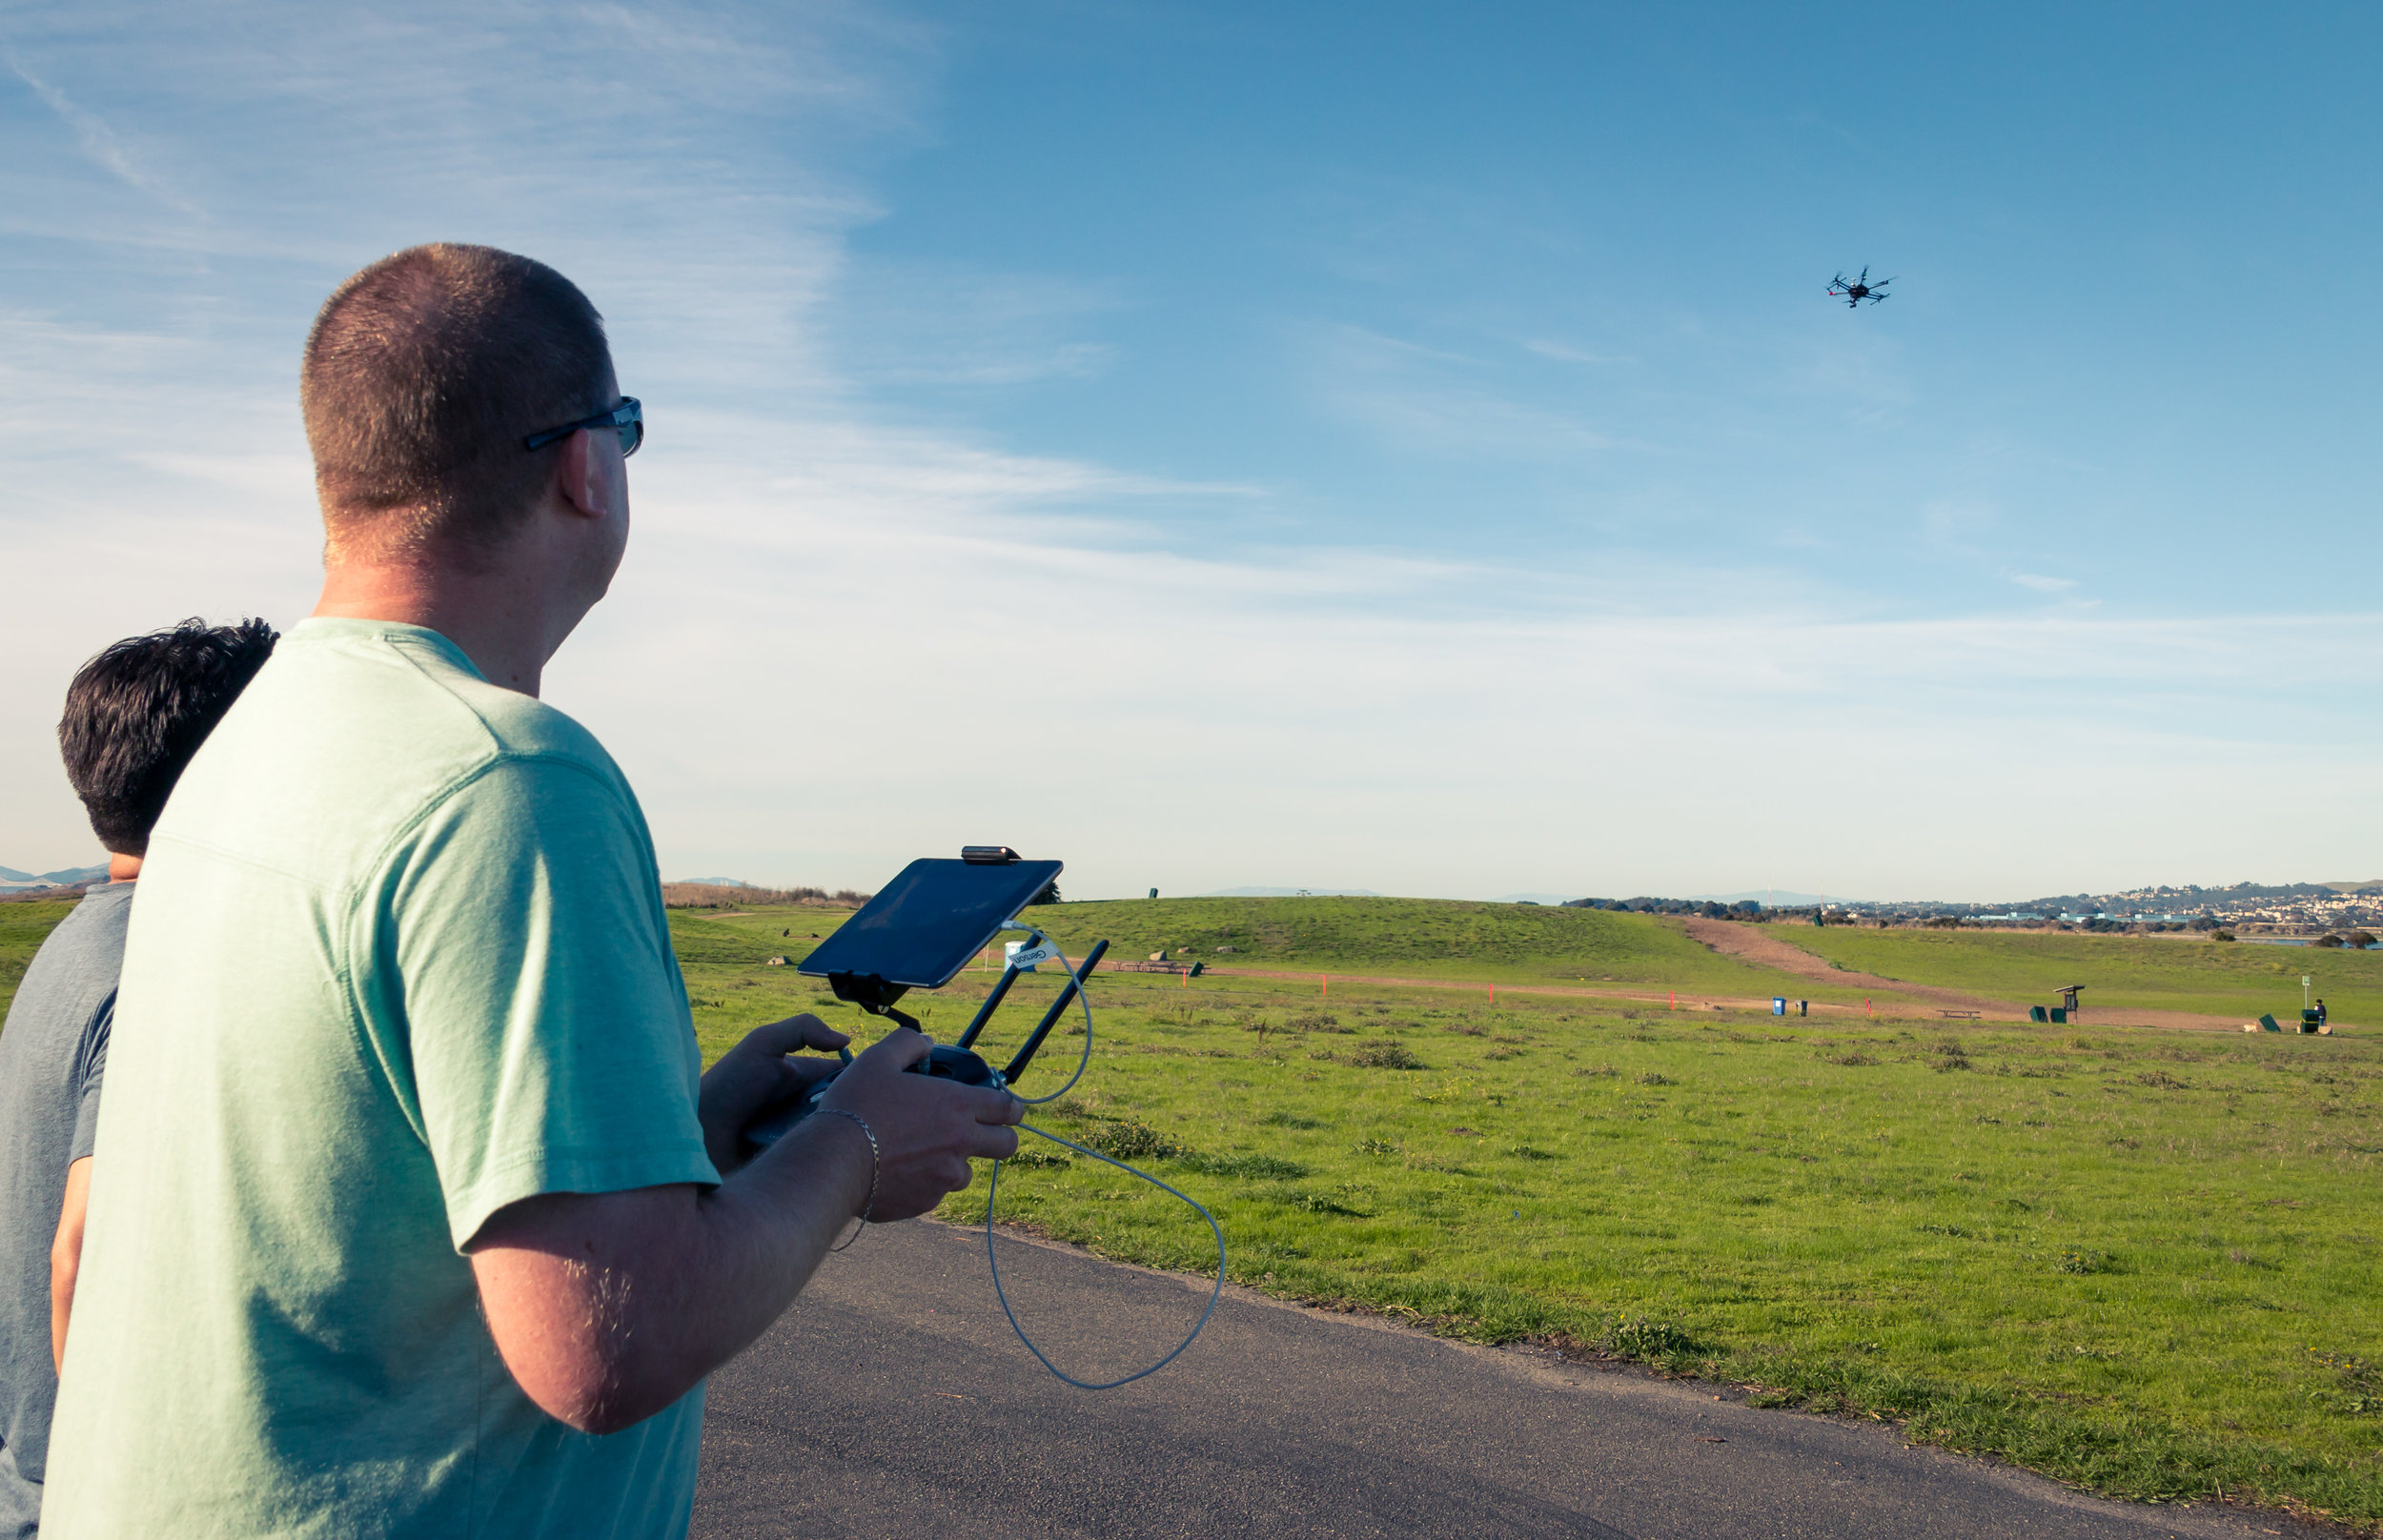 V1DroneMedia uses Licensed and Experienced Drone Pilots